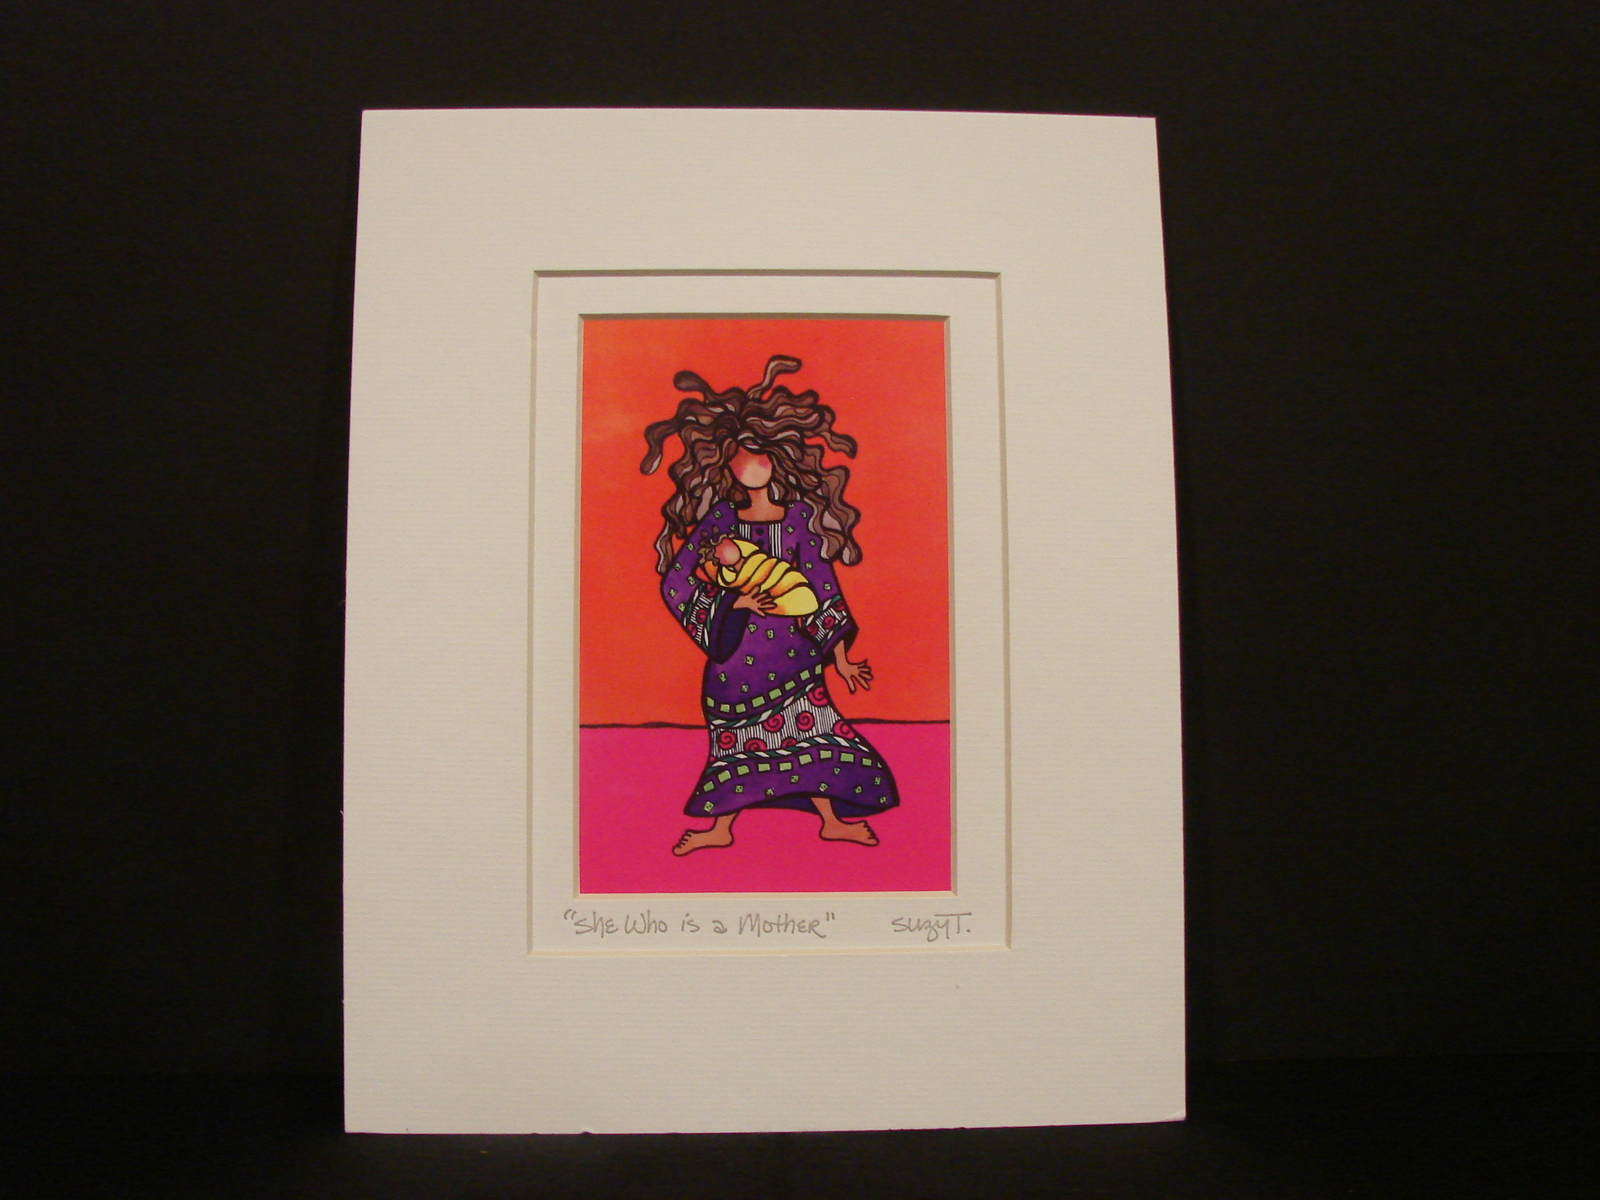 "Suzy Toronto ""She Who is a Mother""  Matted Print, New in Factory Sealed Wrap."